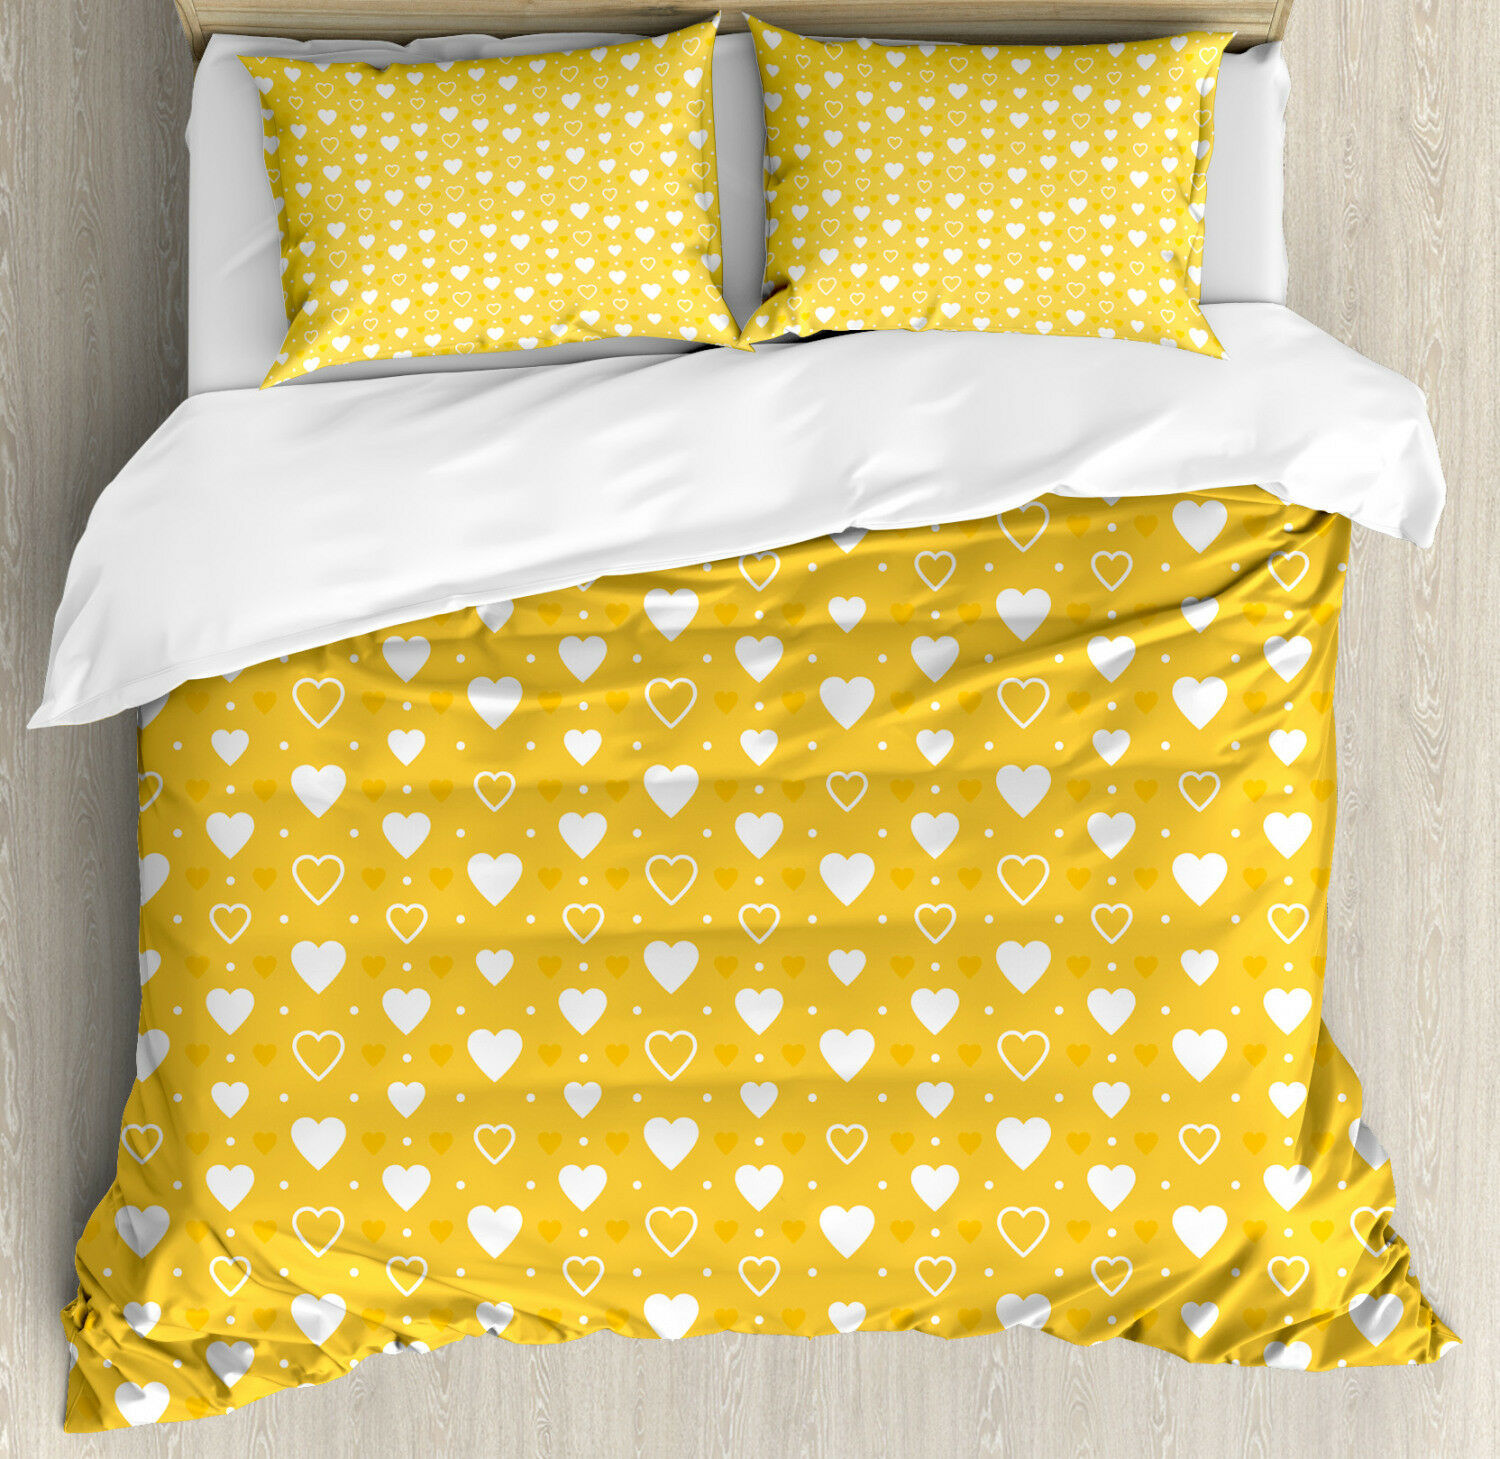 Romantic Duvet Cover Set with Pillow Shams Heart Shapes and Dots Print